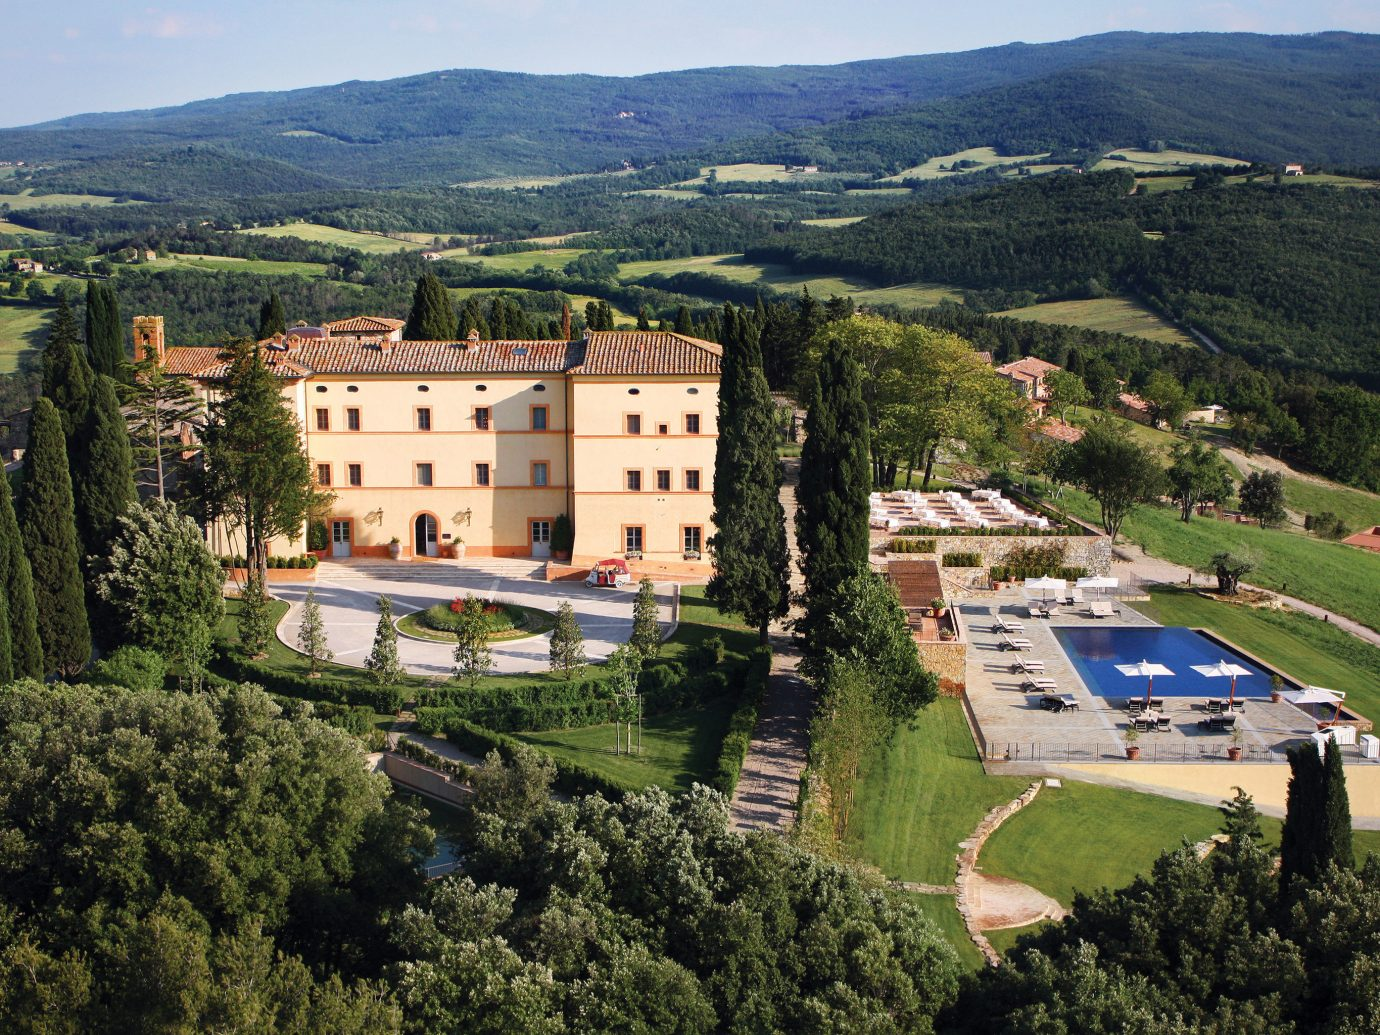 europe Hotels Italy Romance mountain tree outdoor grass sky aerial photography bird's eye view photography Town human settlement estate neighbourhood château Nature residential area hill hillside castle lush beautiful traveling